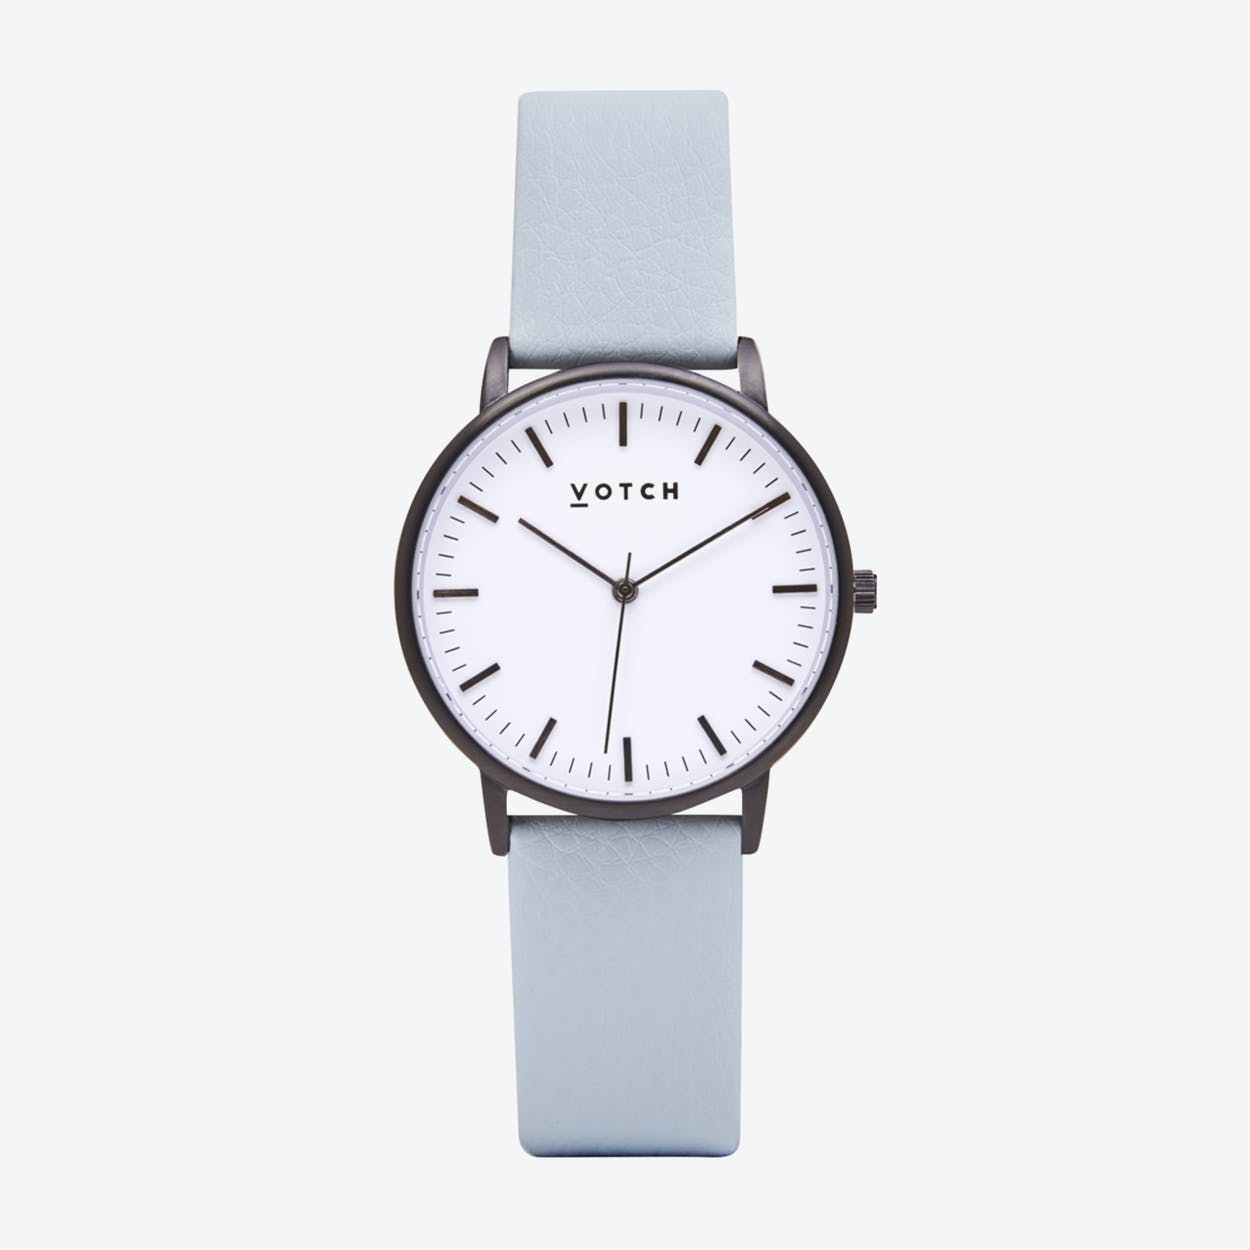 Intense Classic Watch in Black with White Face and Light Blue Vegan Leather Strap, 36mm